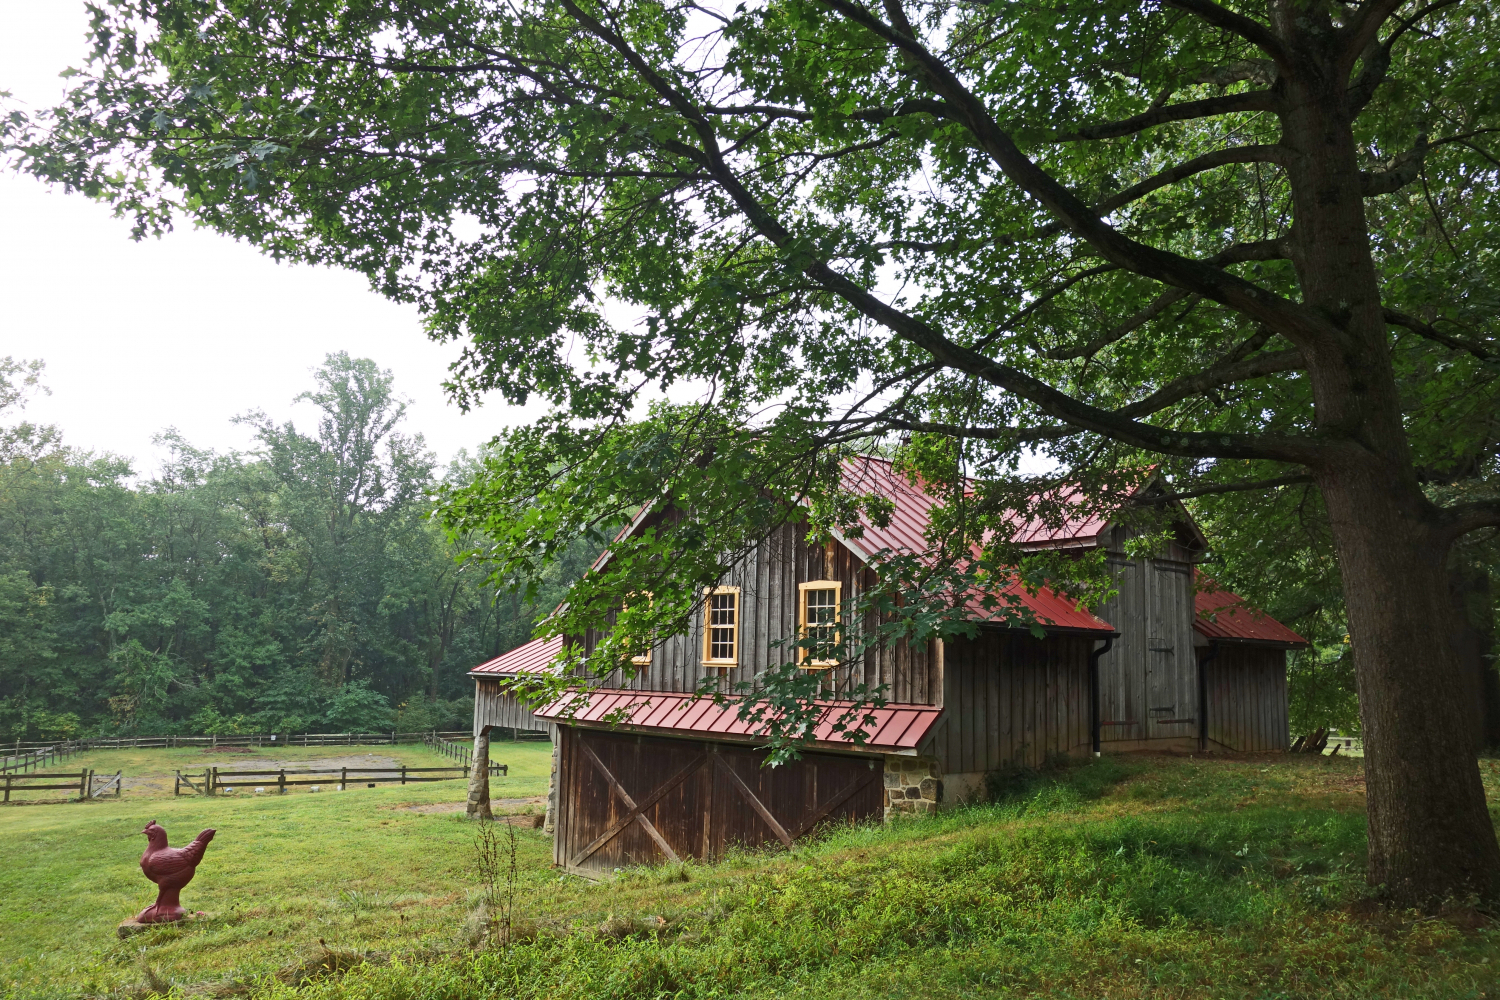 The barn at Rooster Run Farm.